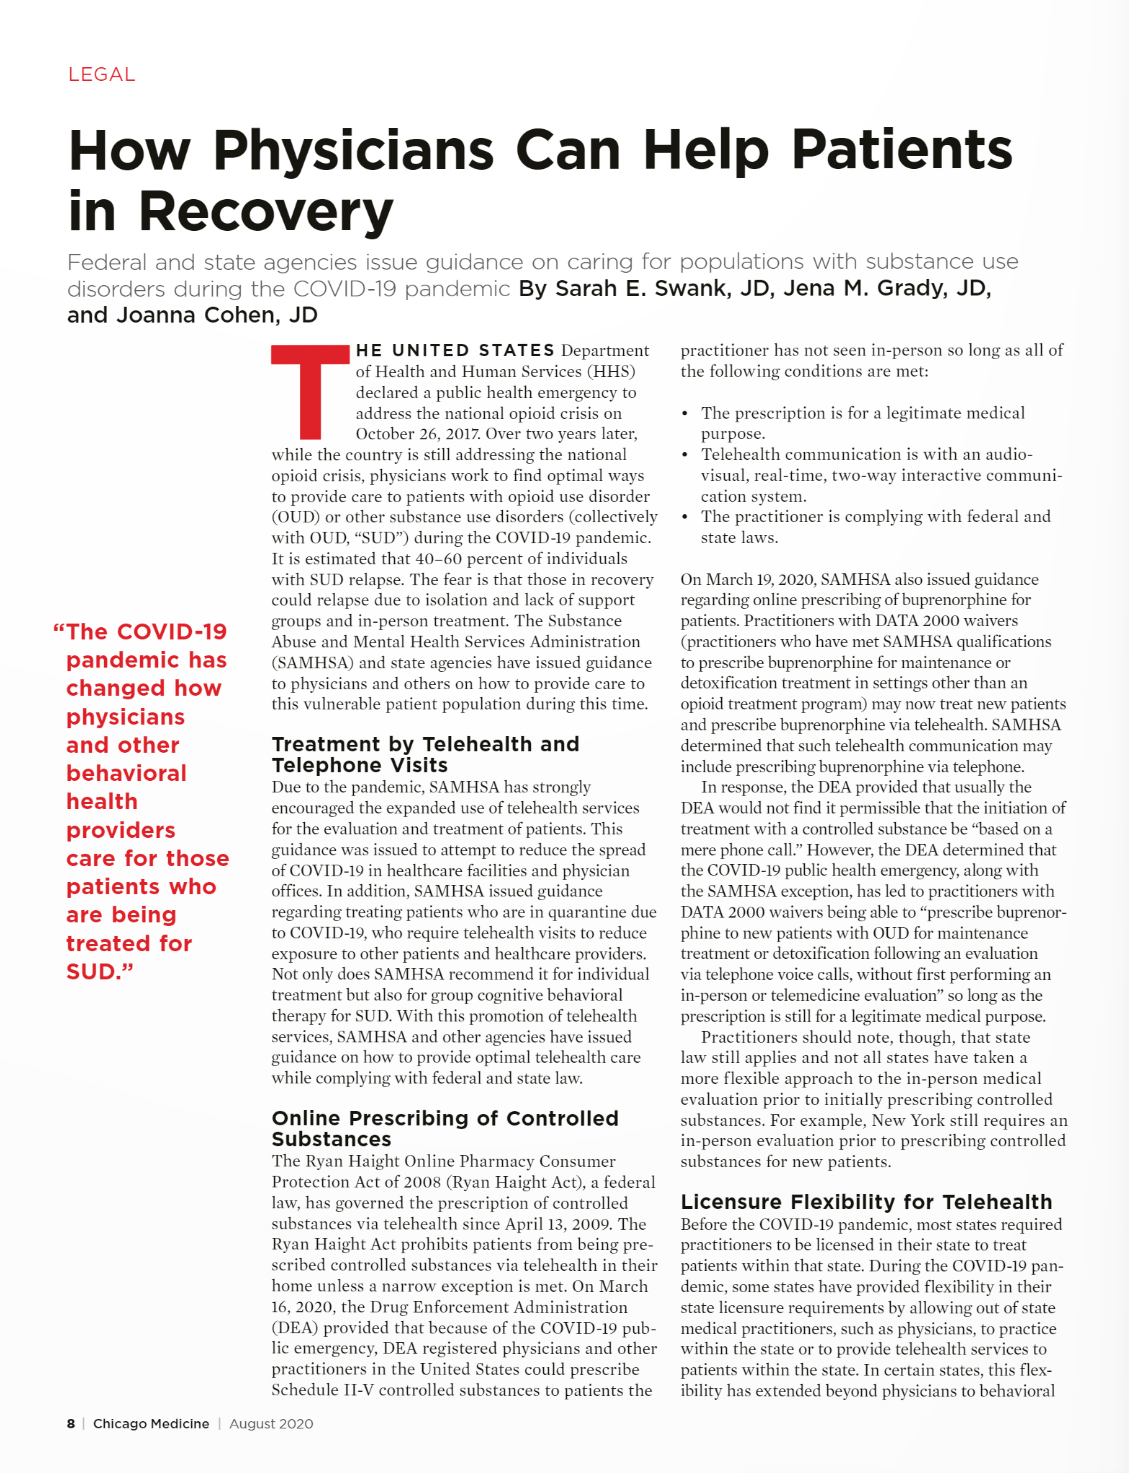 How Physicians Can Help Patients in Recovery